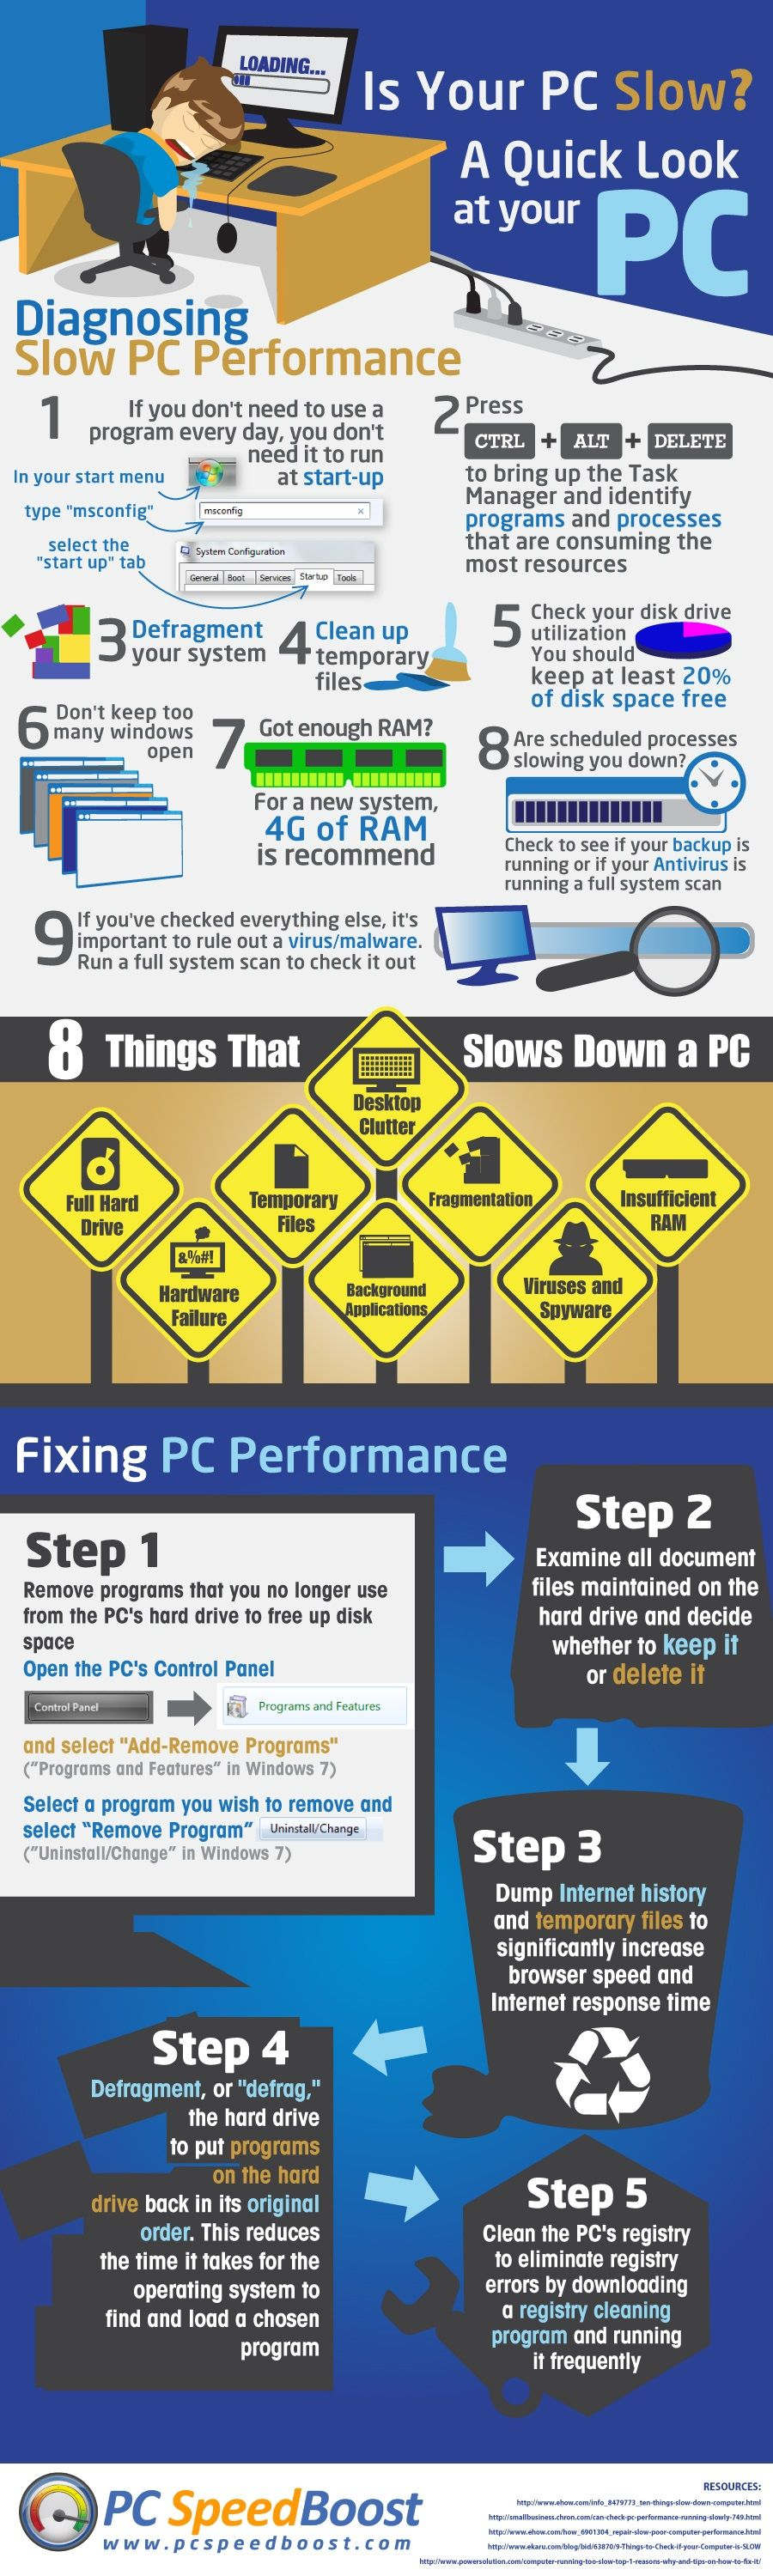 once you learn the 9 ways to boost pc speed and the 8 reasons your